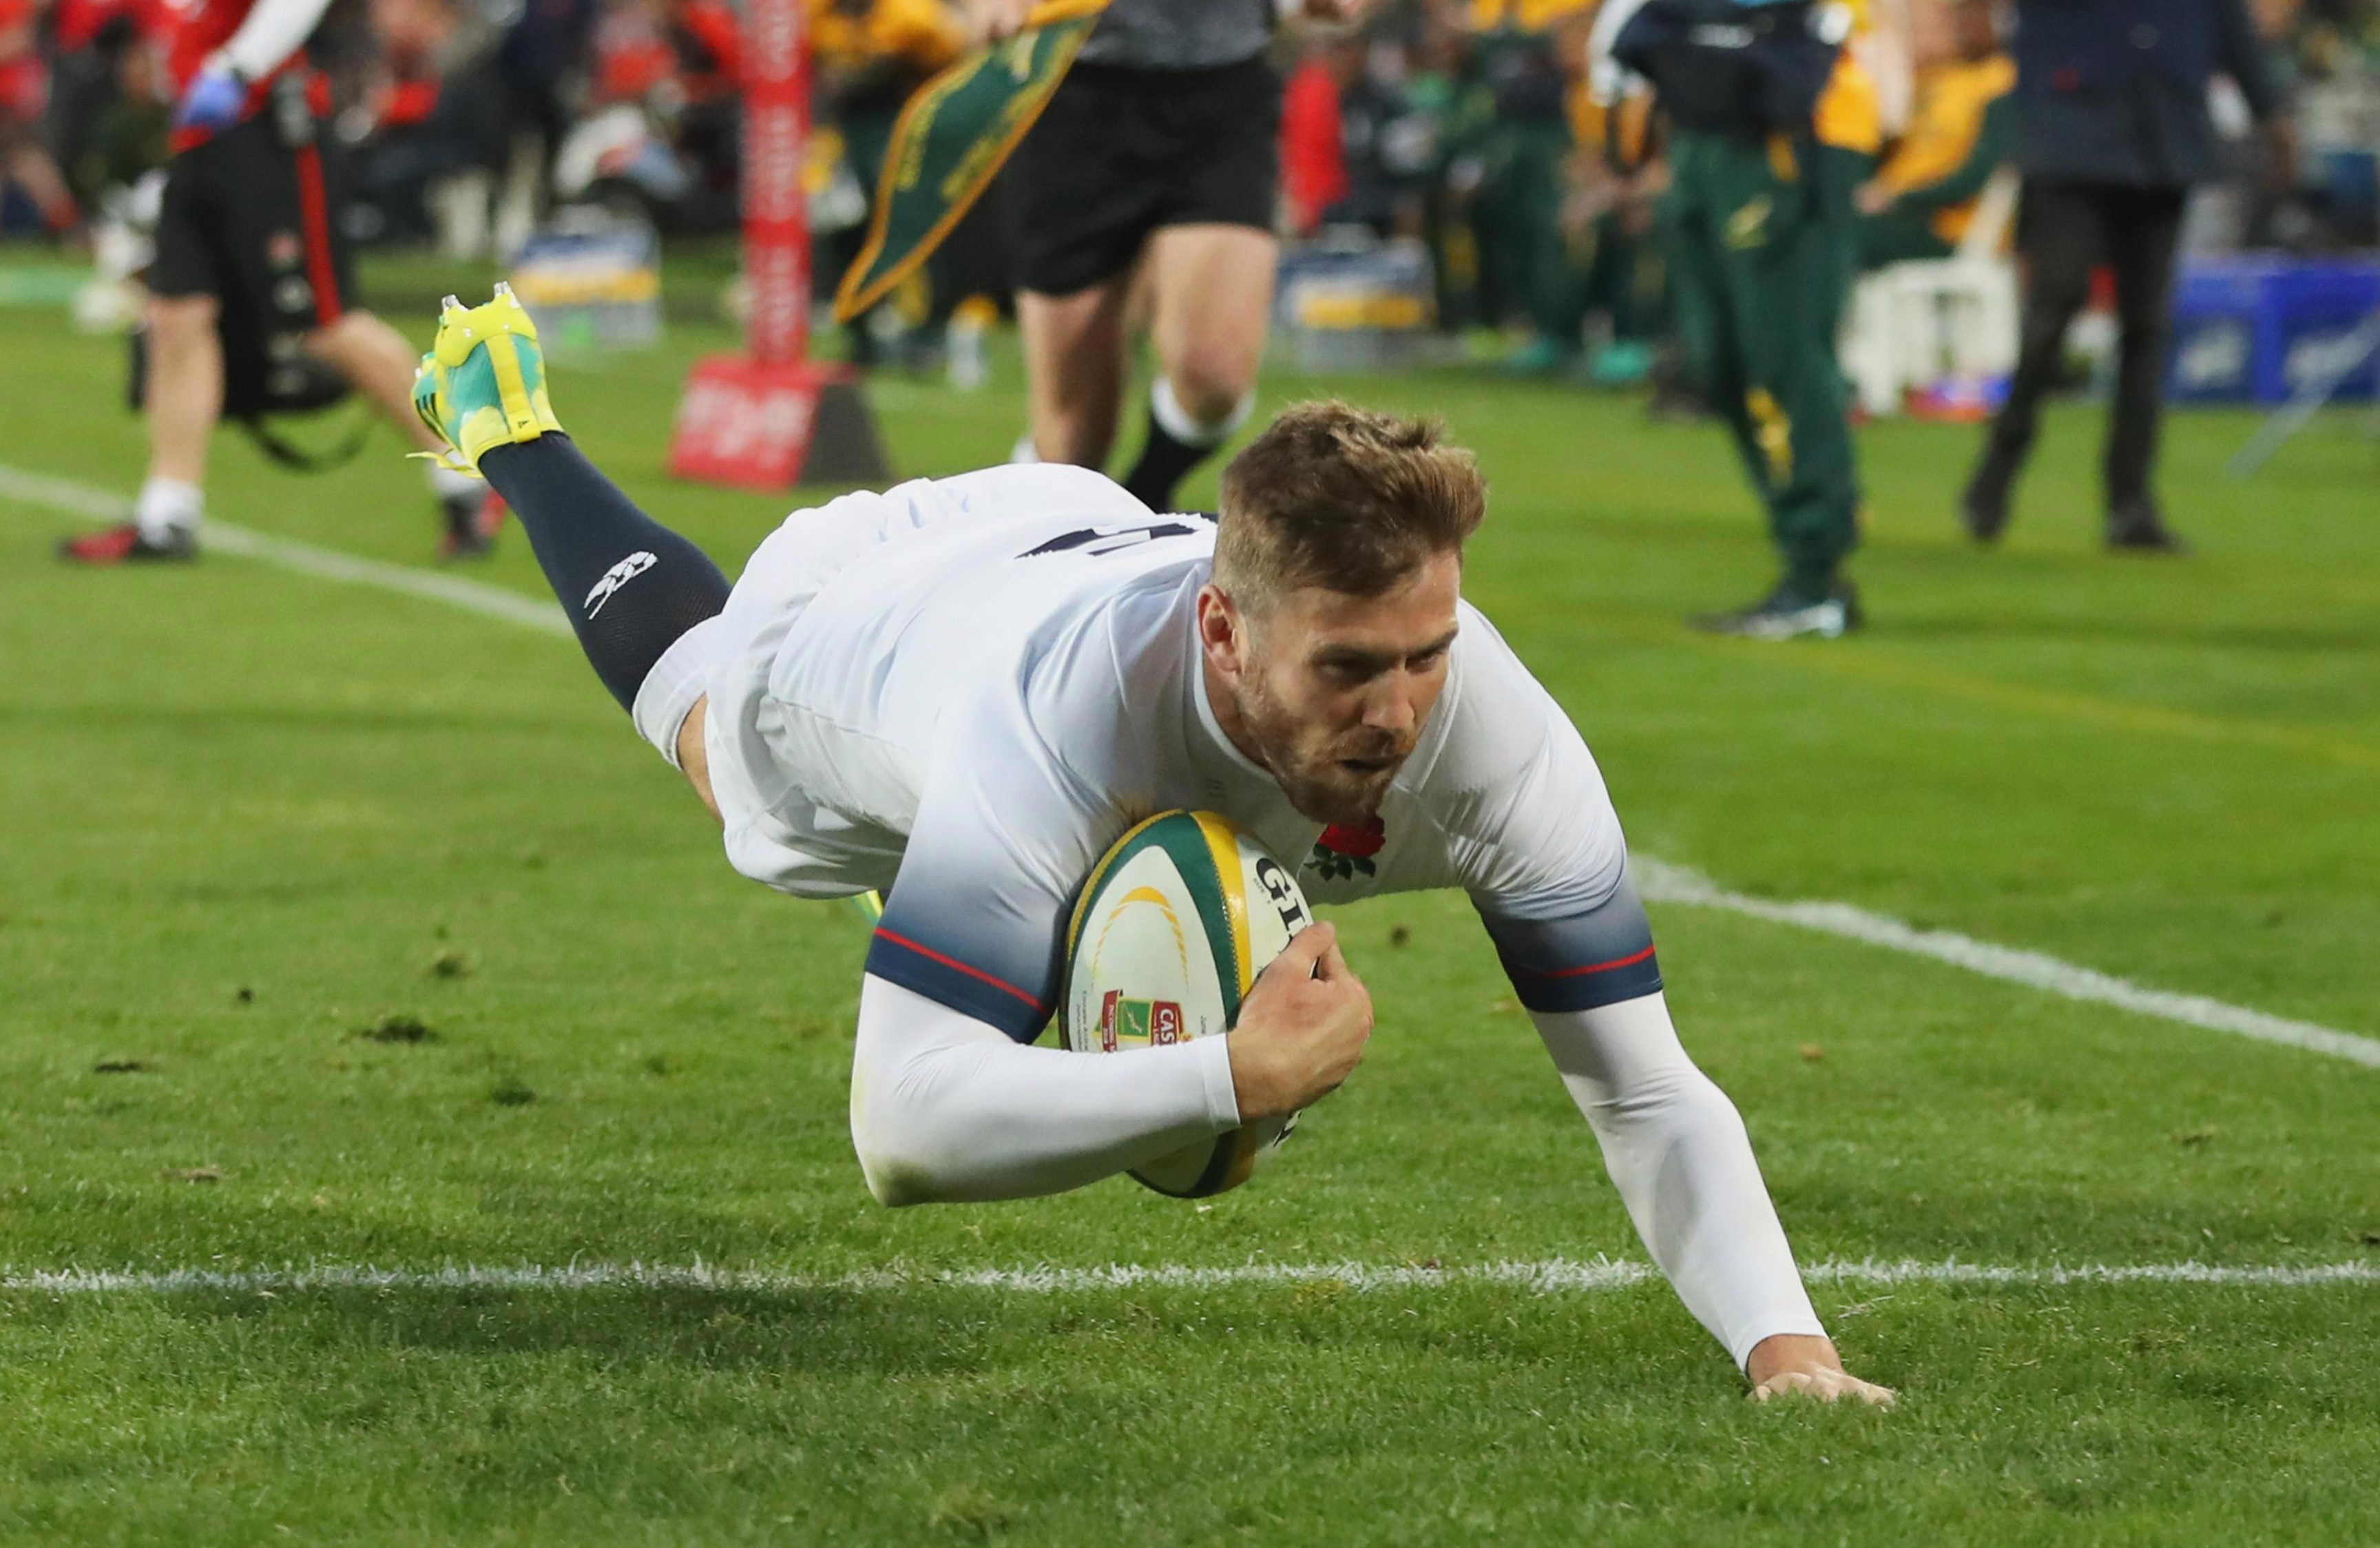 Elliot Daly scored Eddie Jones' side's second try of the game in Johannesburg